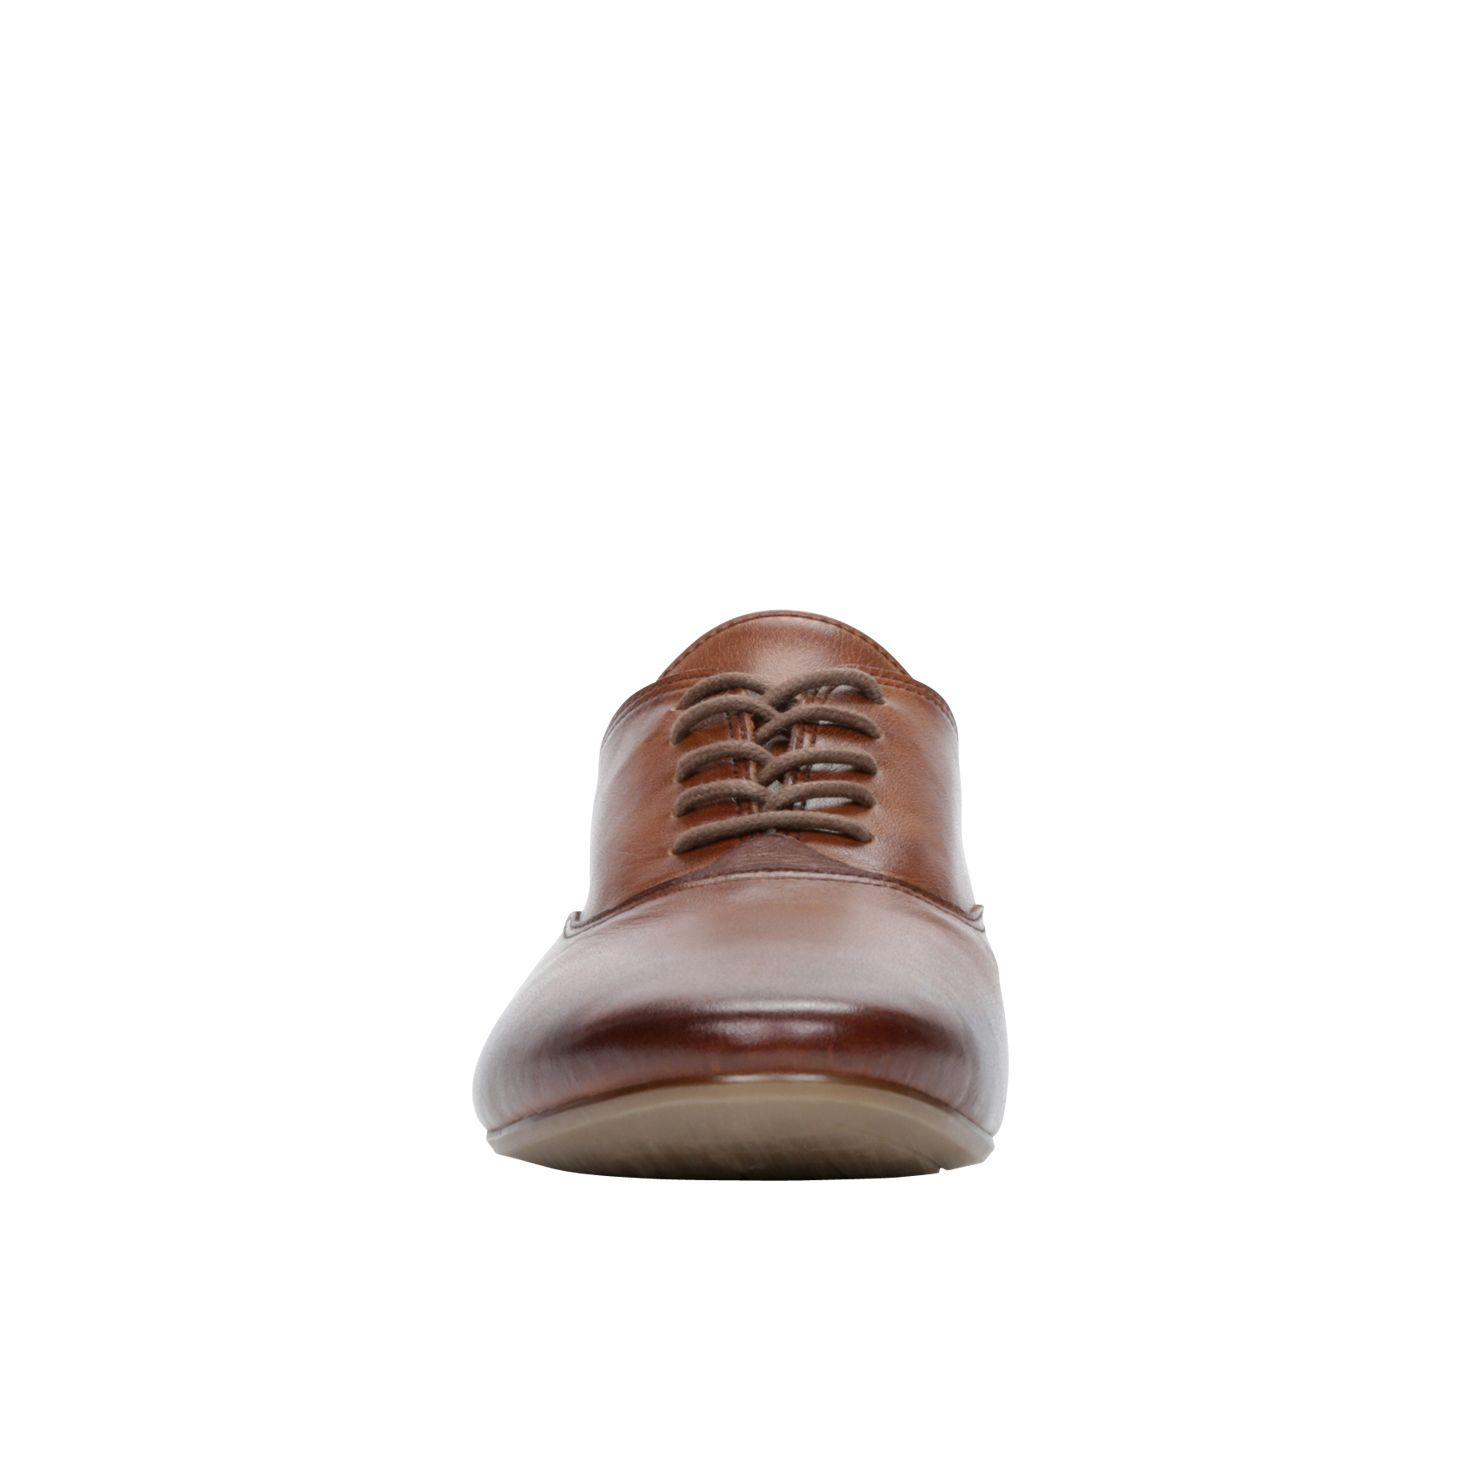 Corerien almond toe lace up shoes